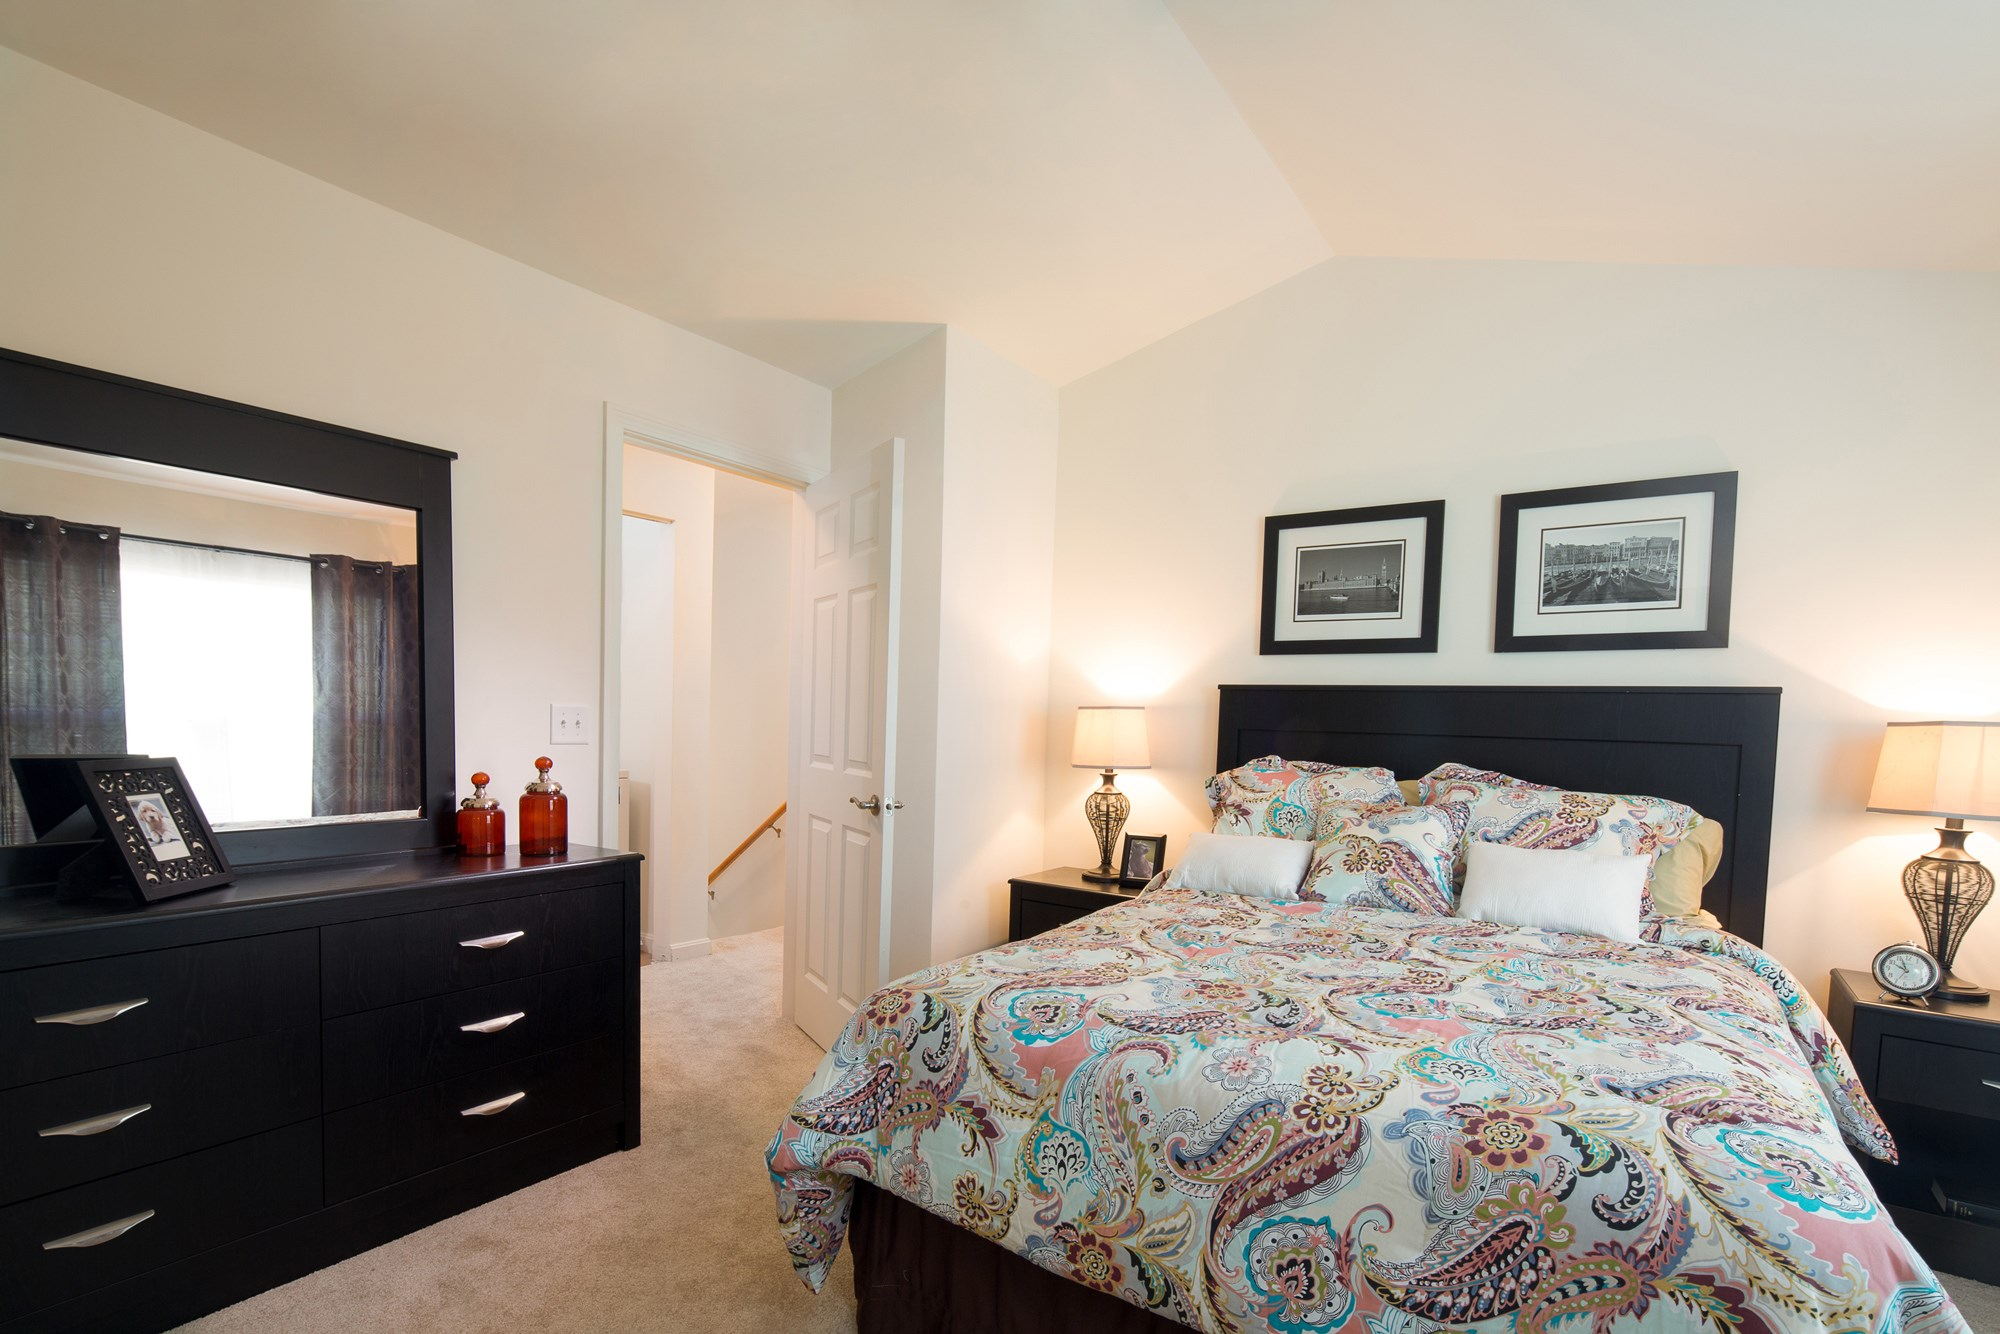 Bedroom at Huntington Townhomes in Shelton, CT